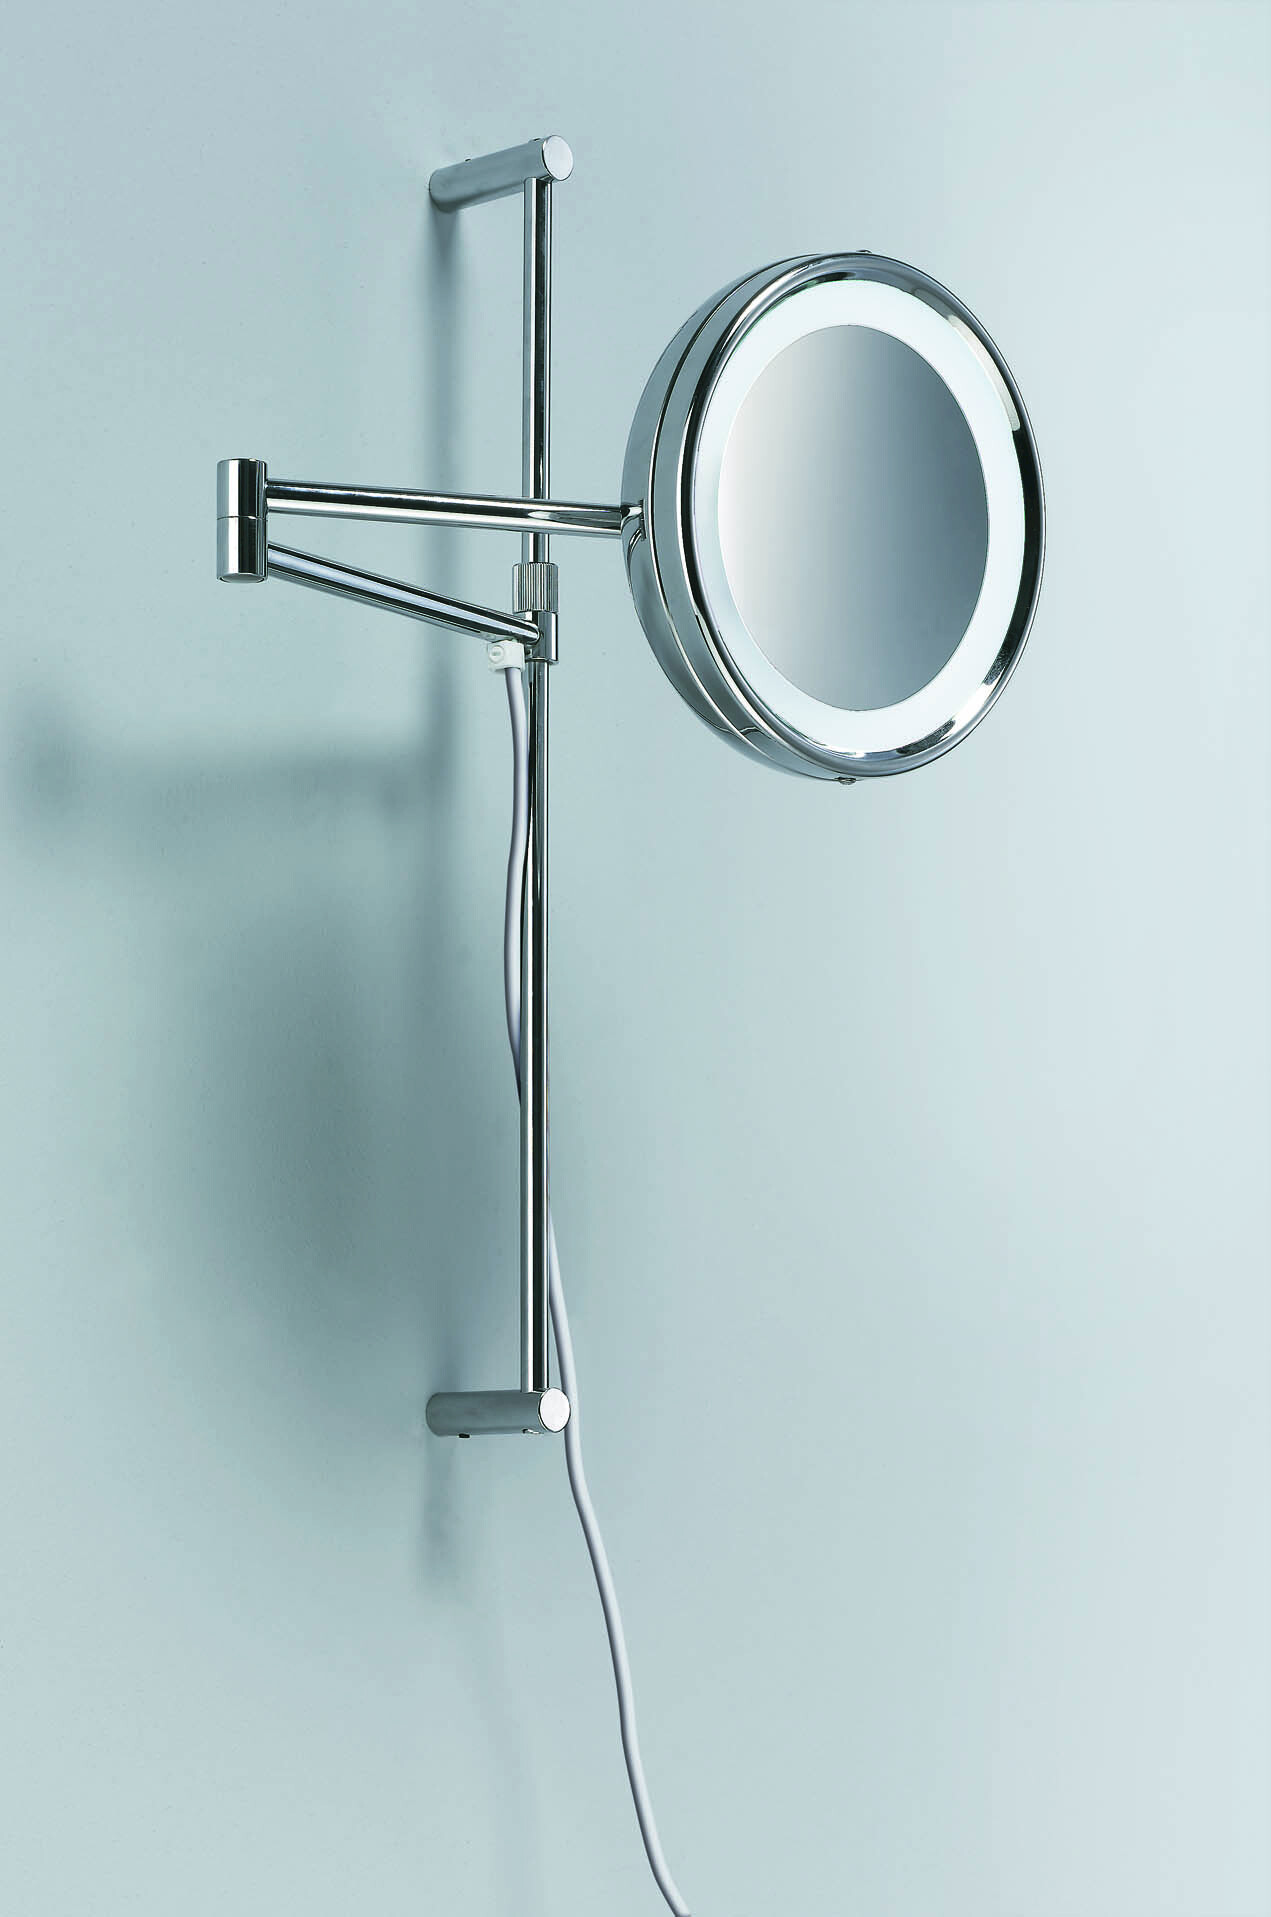 Wall mounted shaving mirrors archiproducts amipublicfo Gallery